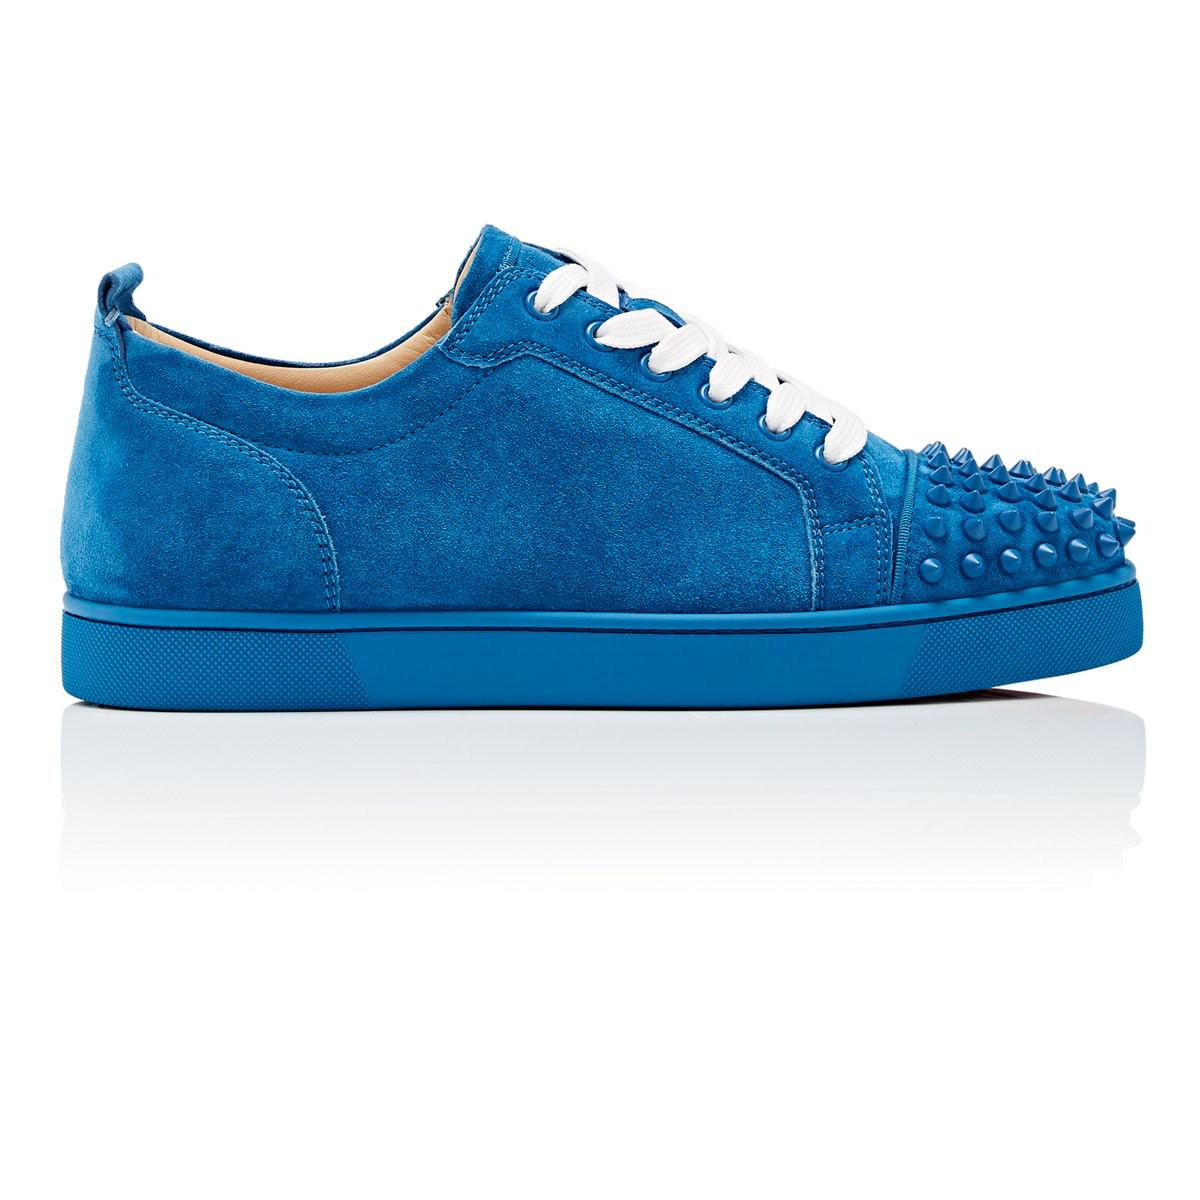 1cf93681dcb Christian Louboutin Louis Junior Spikes Flat Suede Sneakers in Blue ...